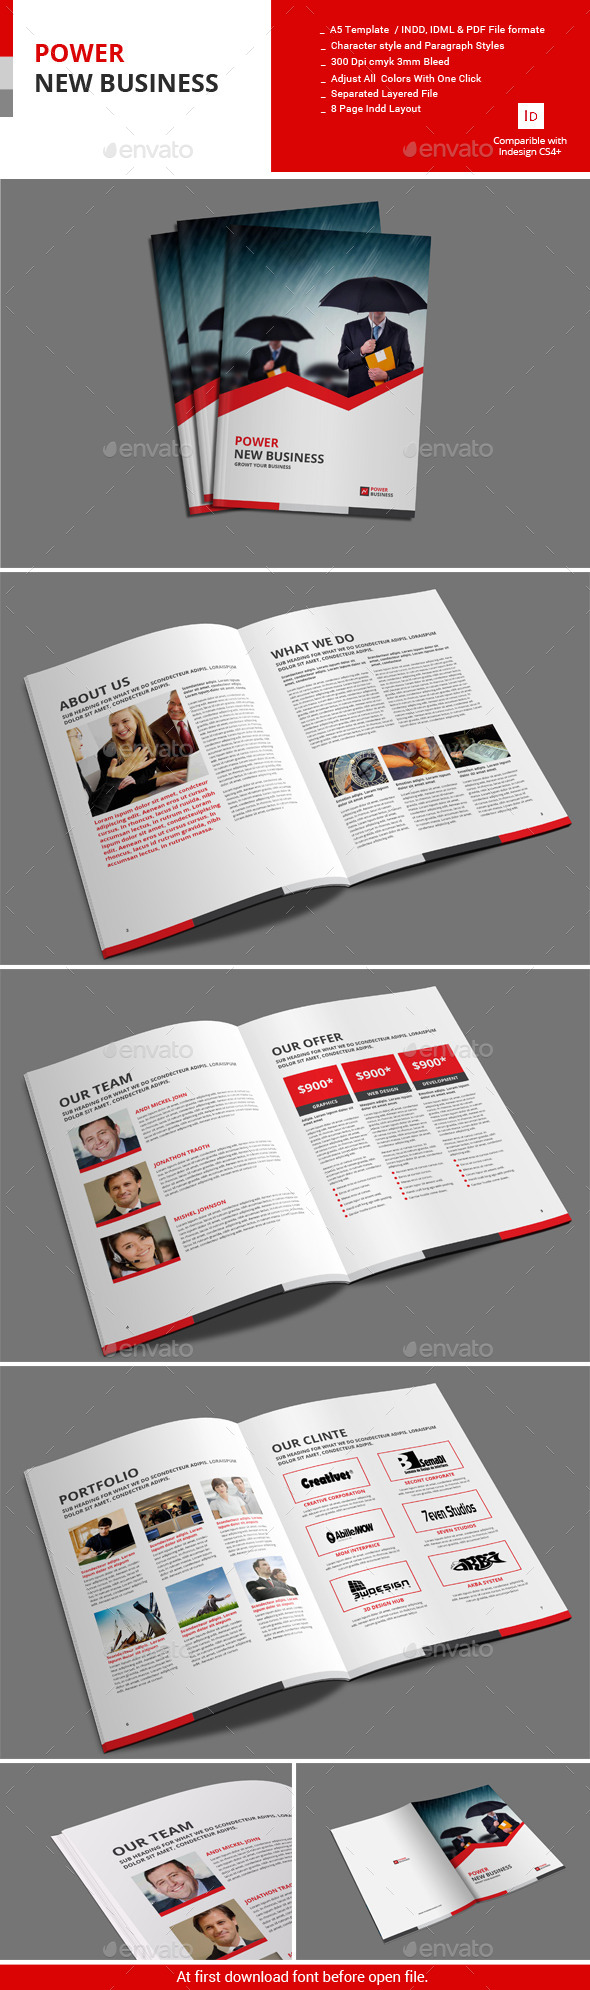 GraphicRiver 8 Pages Power New Business 11002128